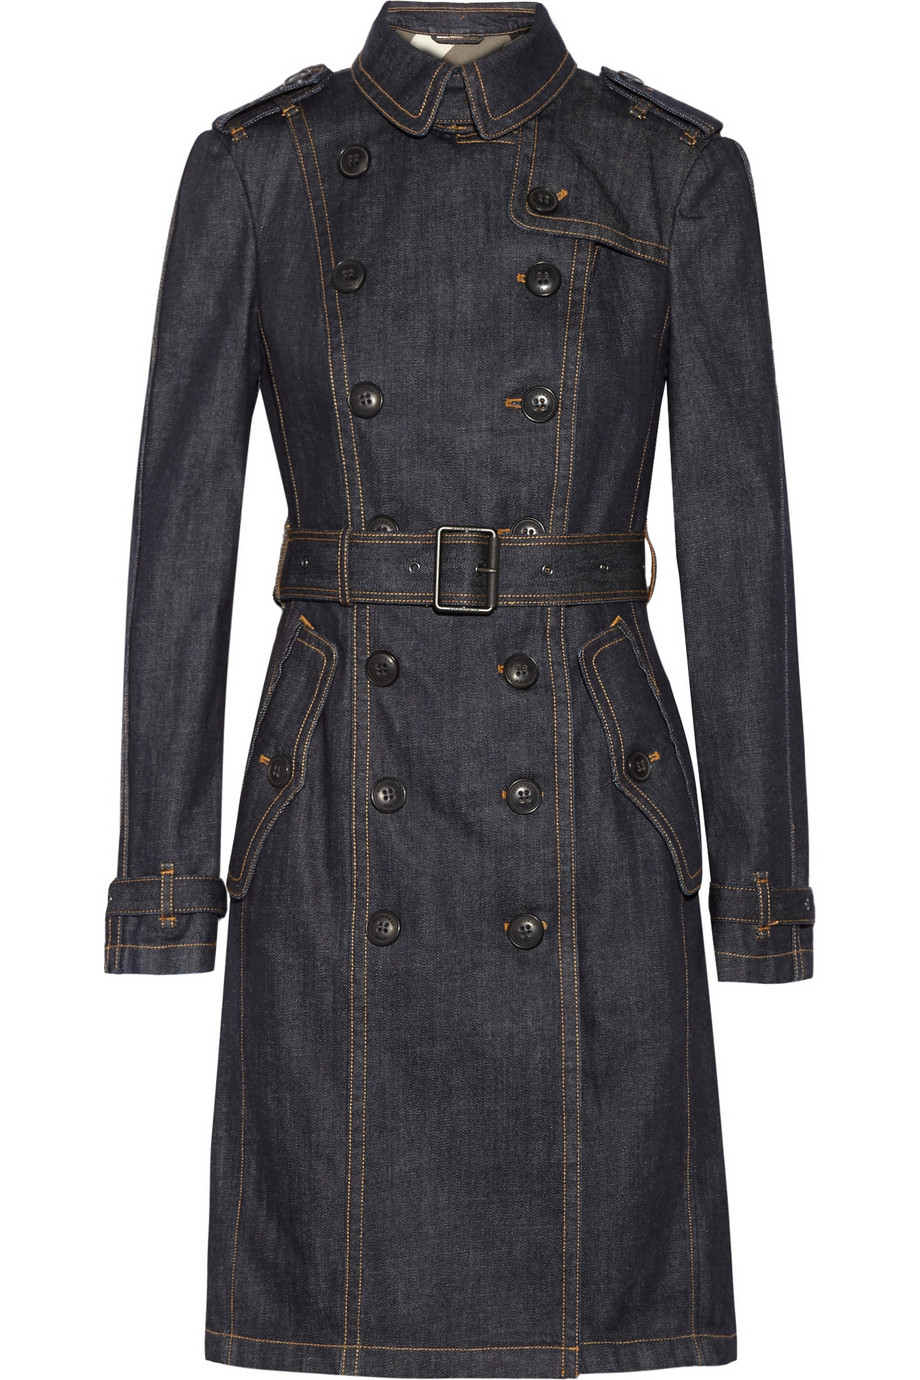 Burberry Brit Denim Trench Coat In Blue Lyst